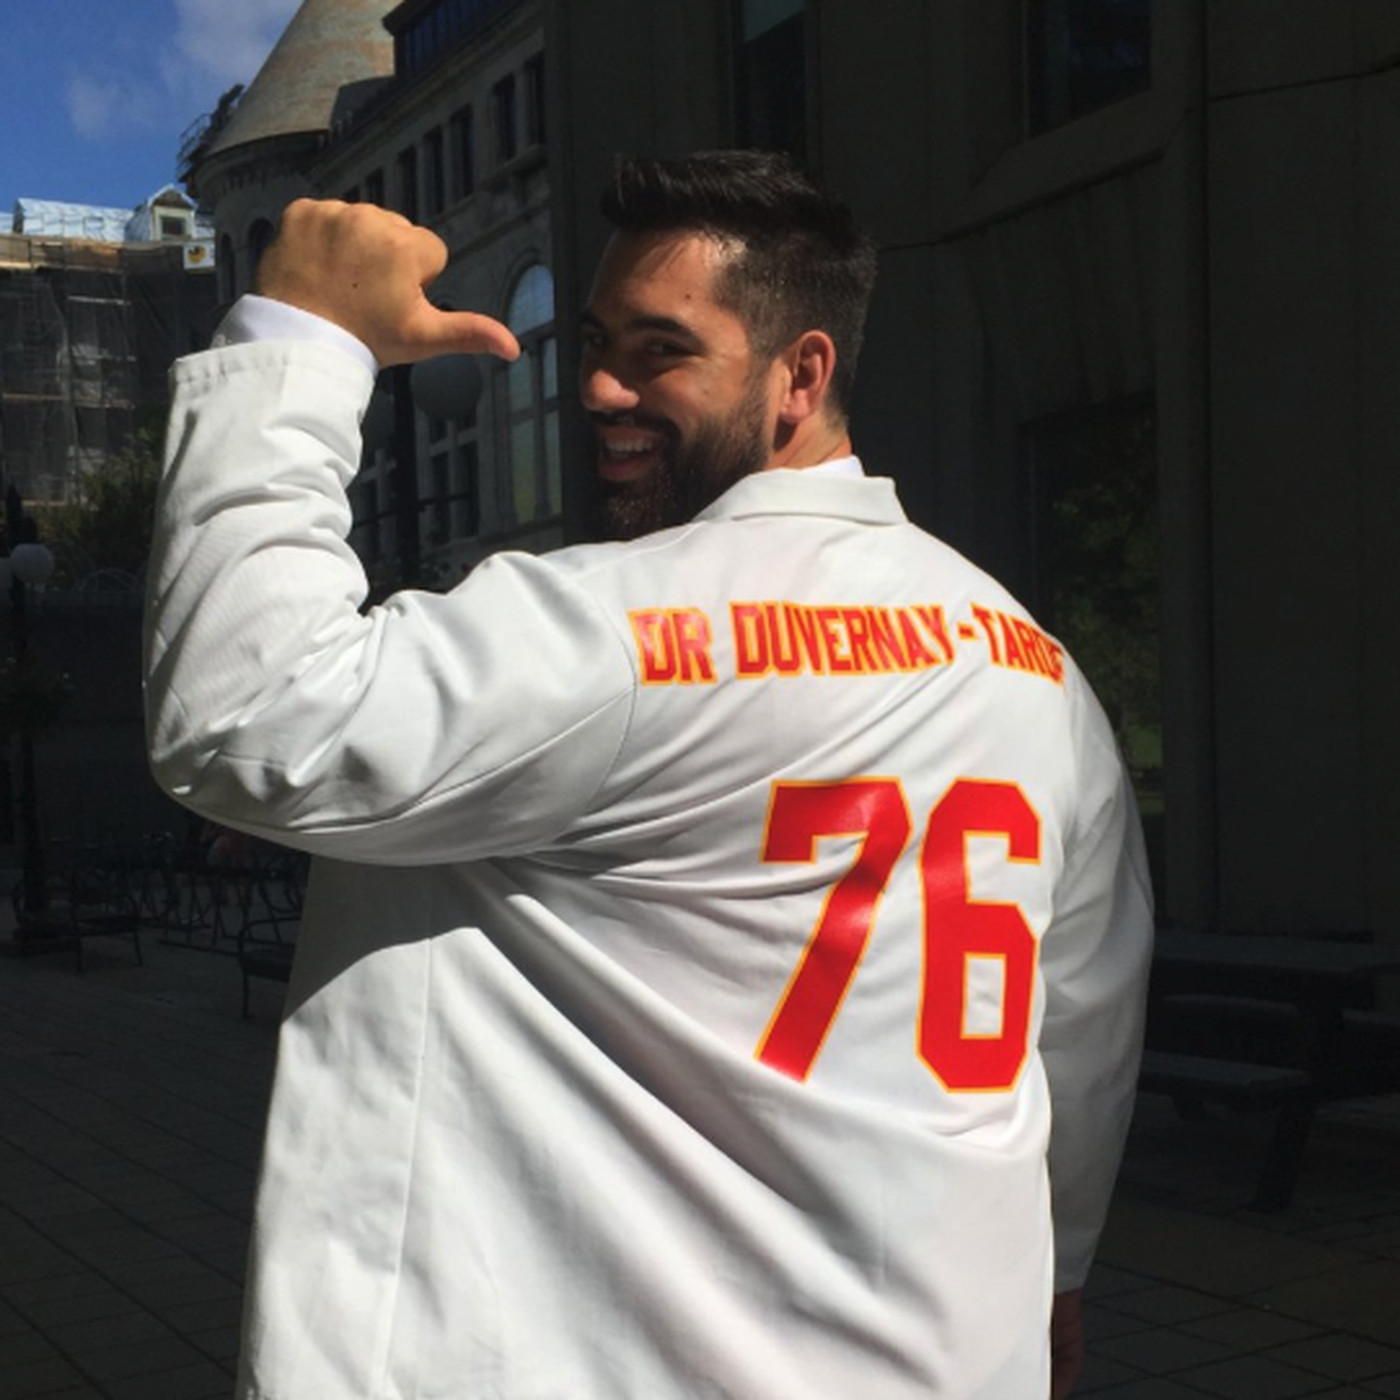 52a43adf NFL reportedly rejects Laurent Duvernay-Tardif's 'M.D.' jersey ...